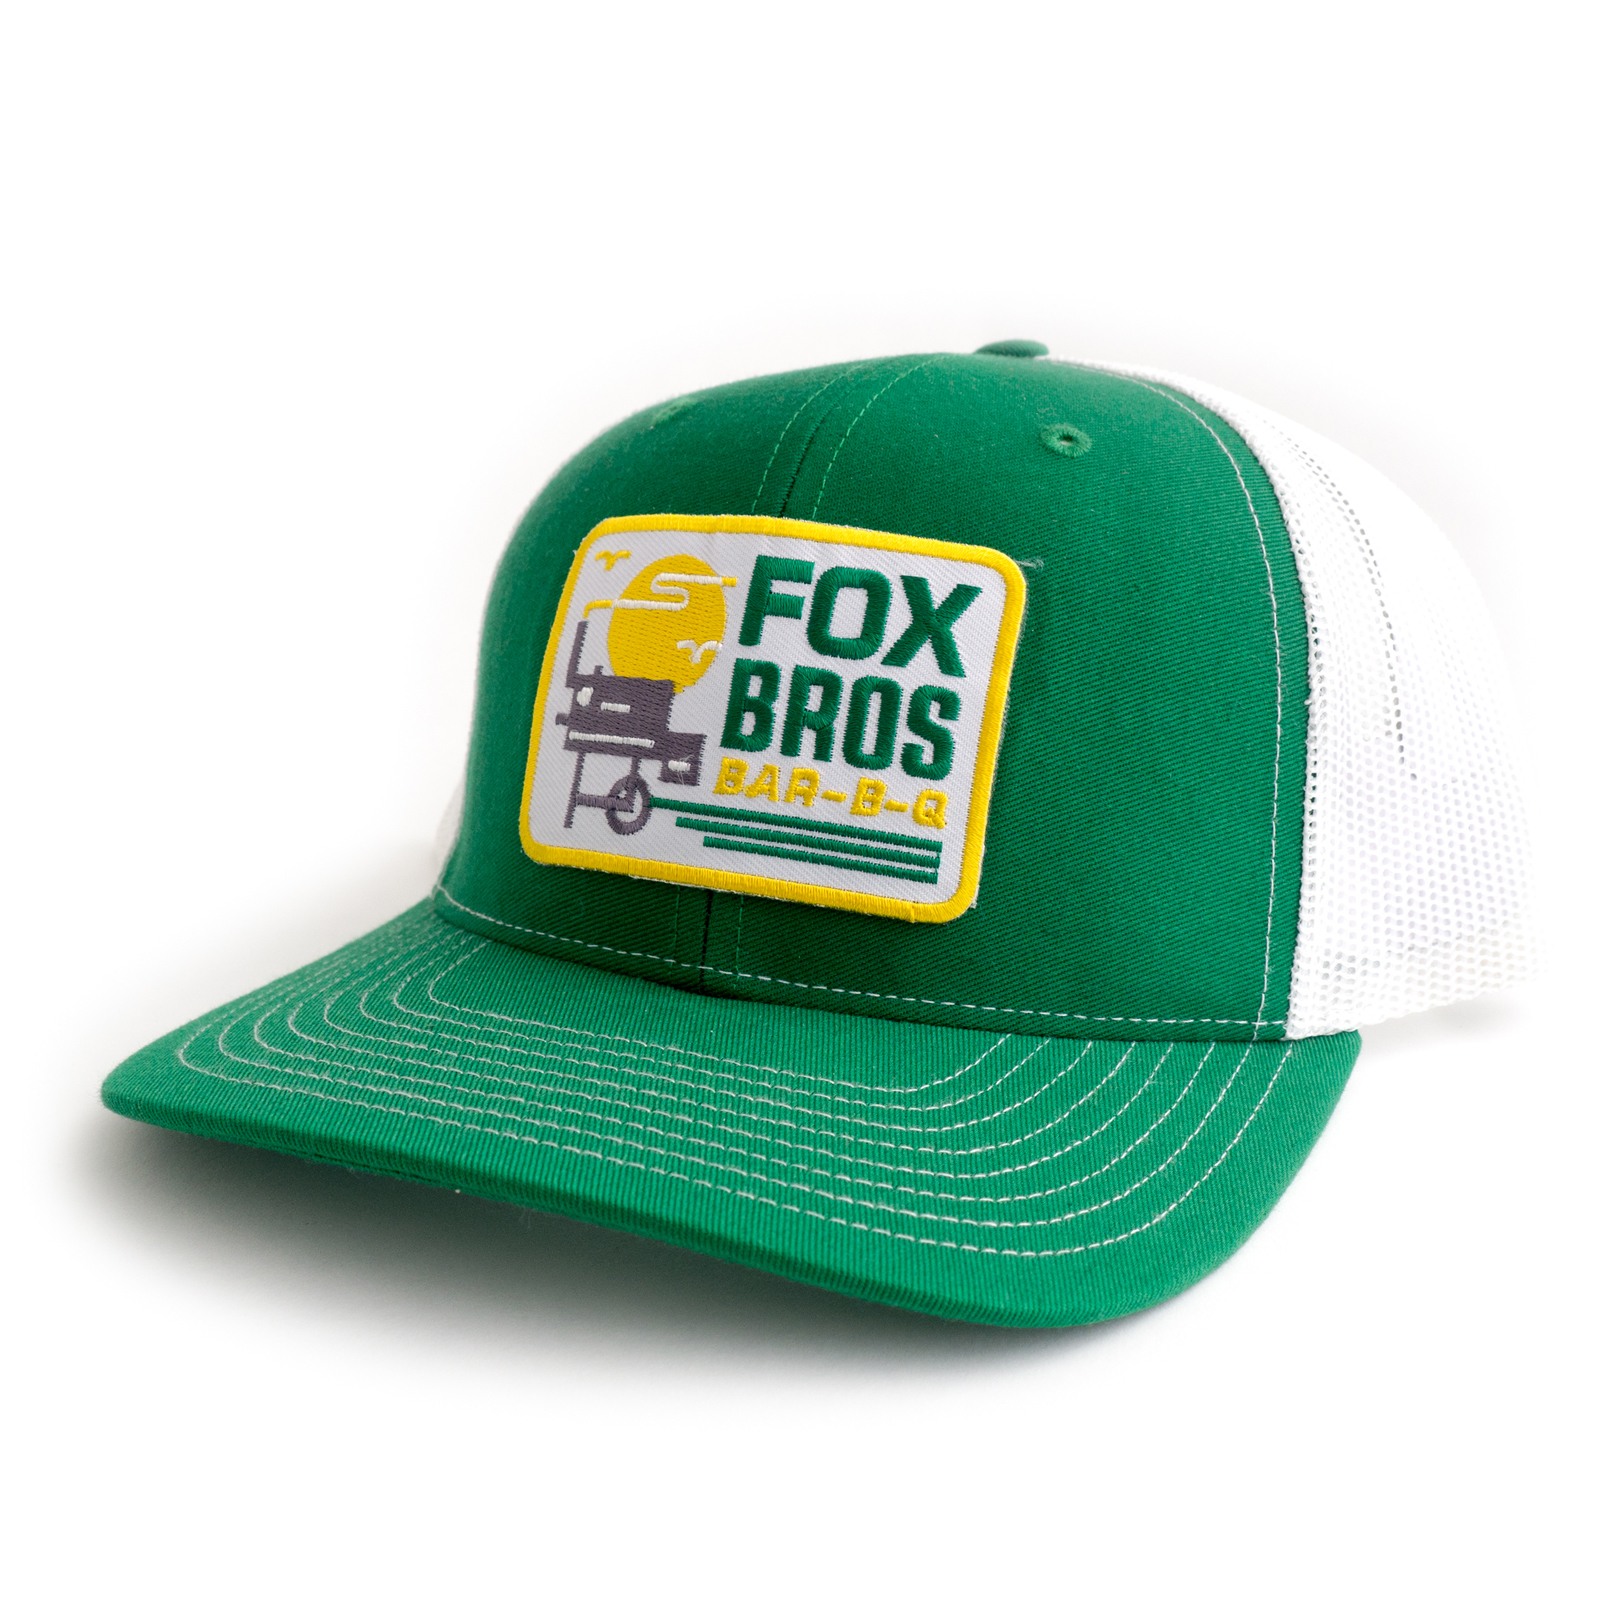 FOX_Hats_Smoker-Green.jpg